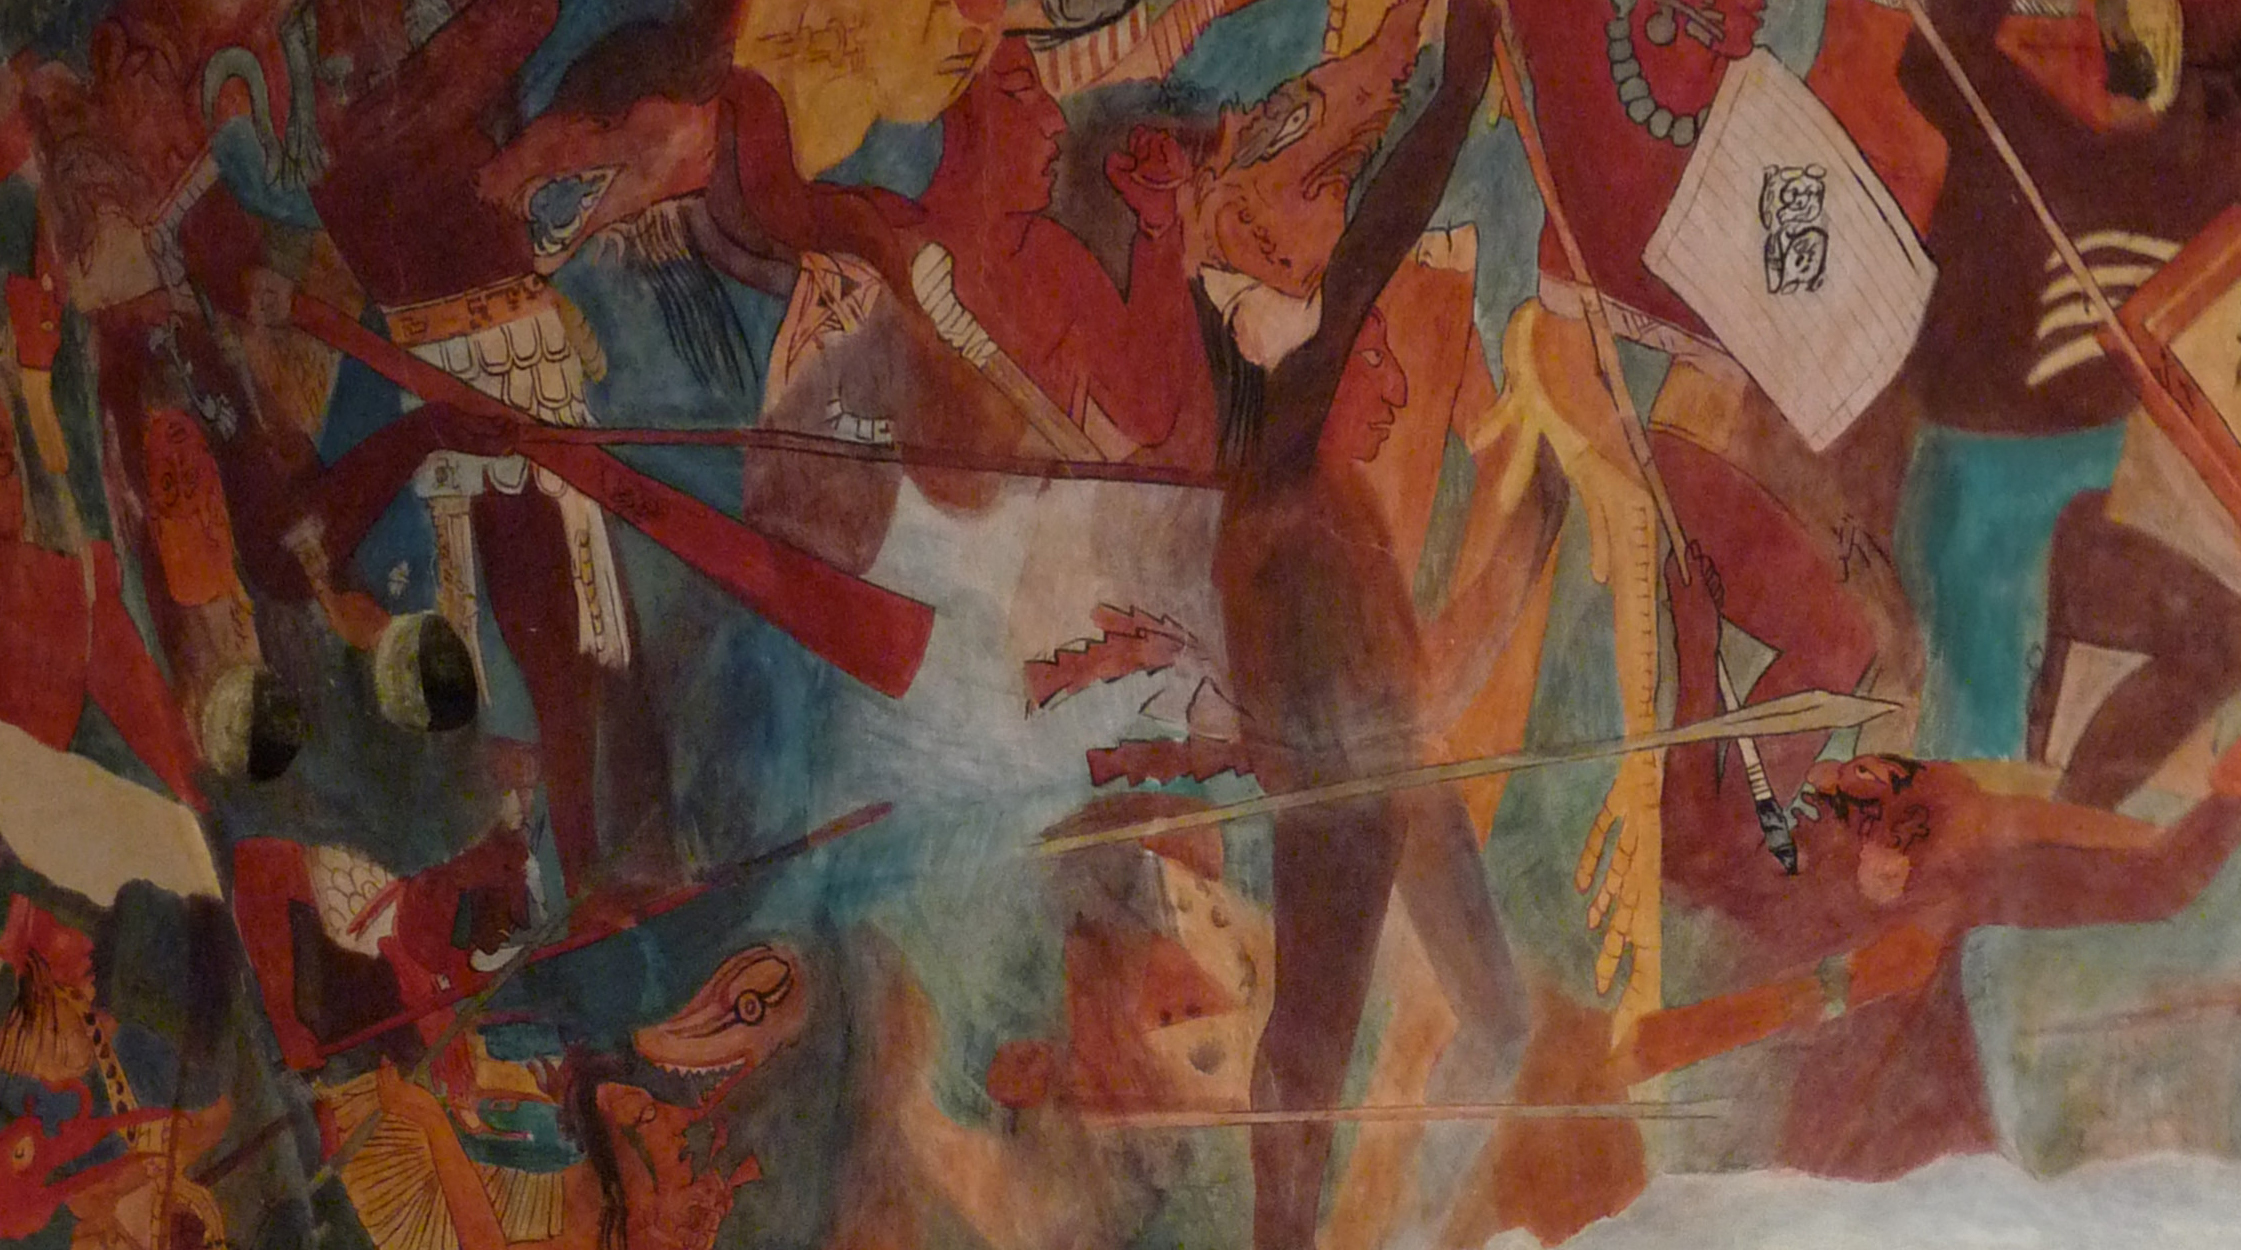 The discovery of the bonampak murals representing war for El mural de bonampak